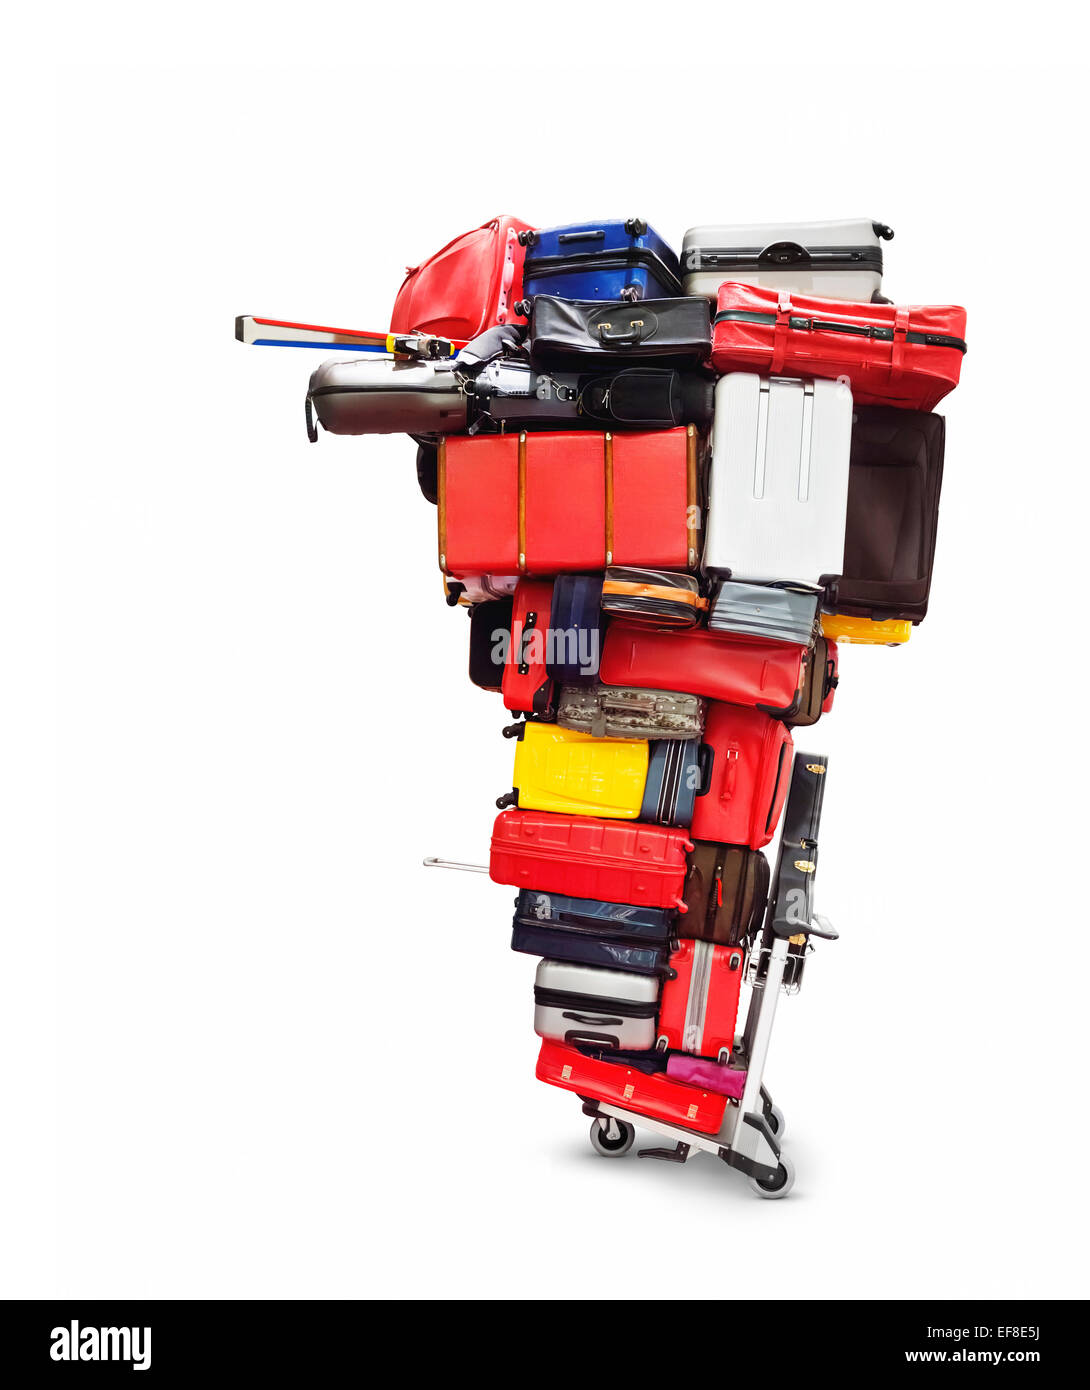 Airport baggage cart with an enormous pile of luggage on it, stacked colorful suitcases isolated on white background - Stock Image